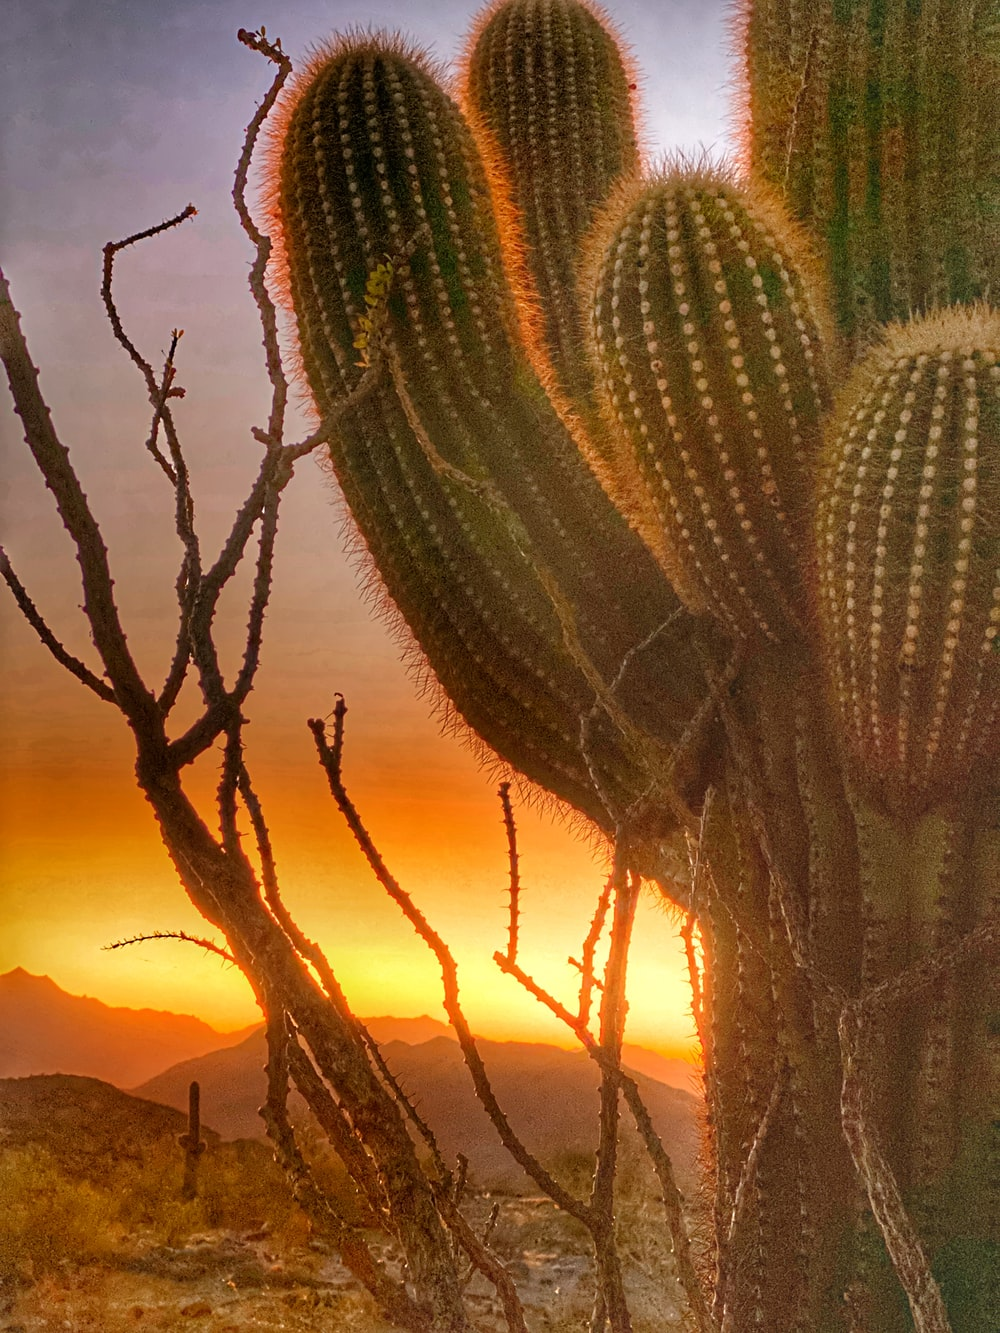 green cactus during golden hour